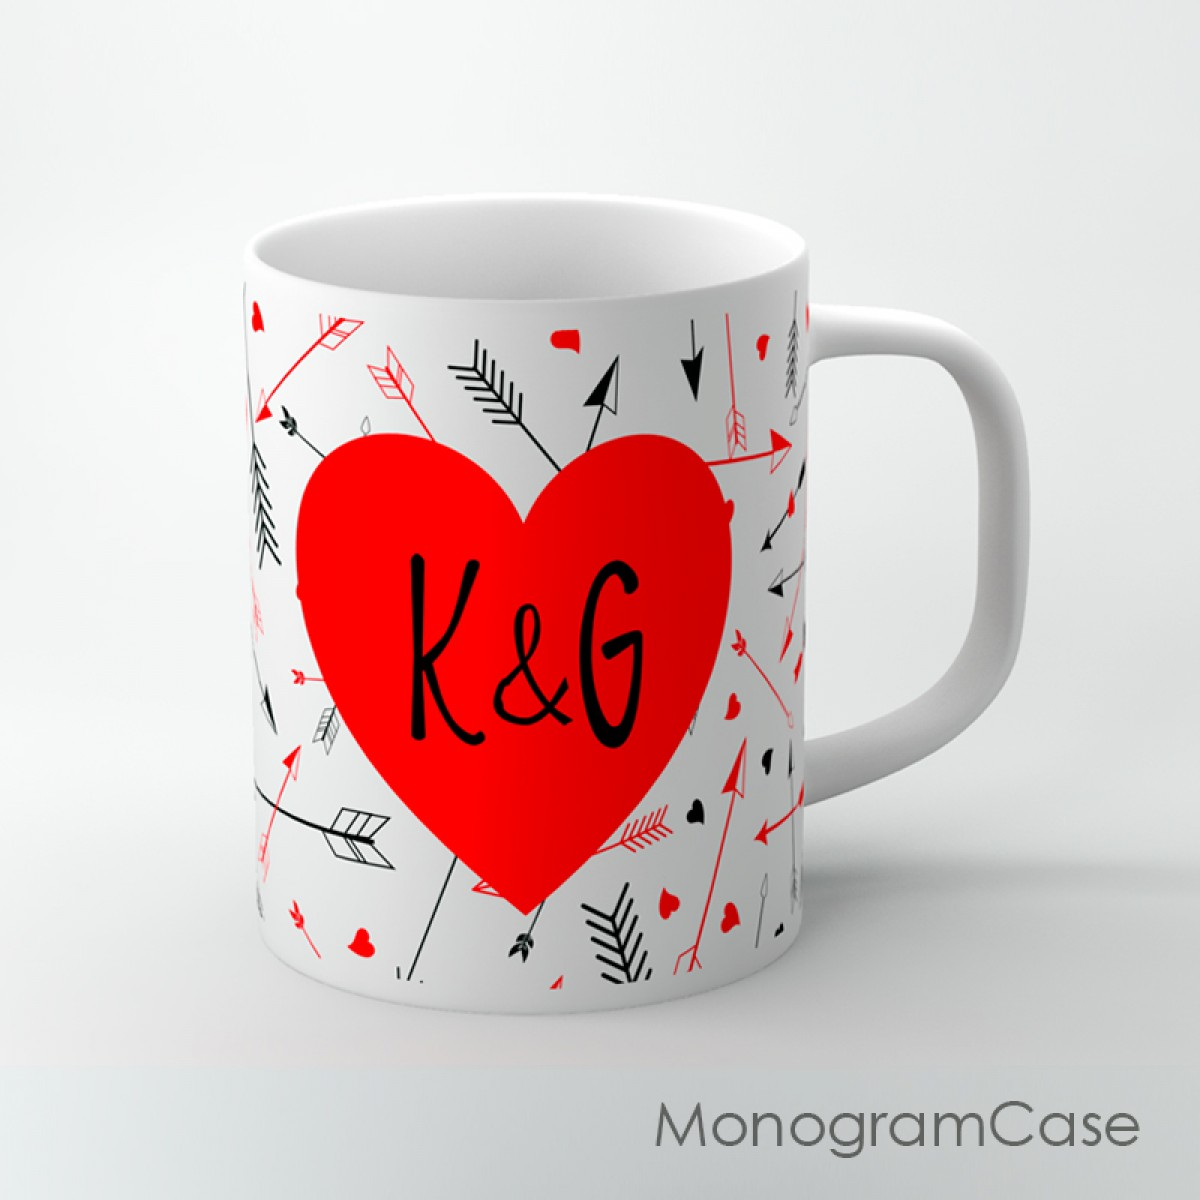 Love Arrows Red Heart Coffee Cup Monogramcase